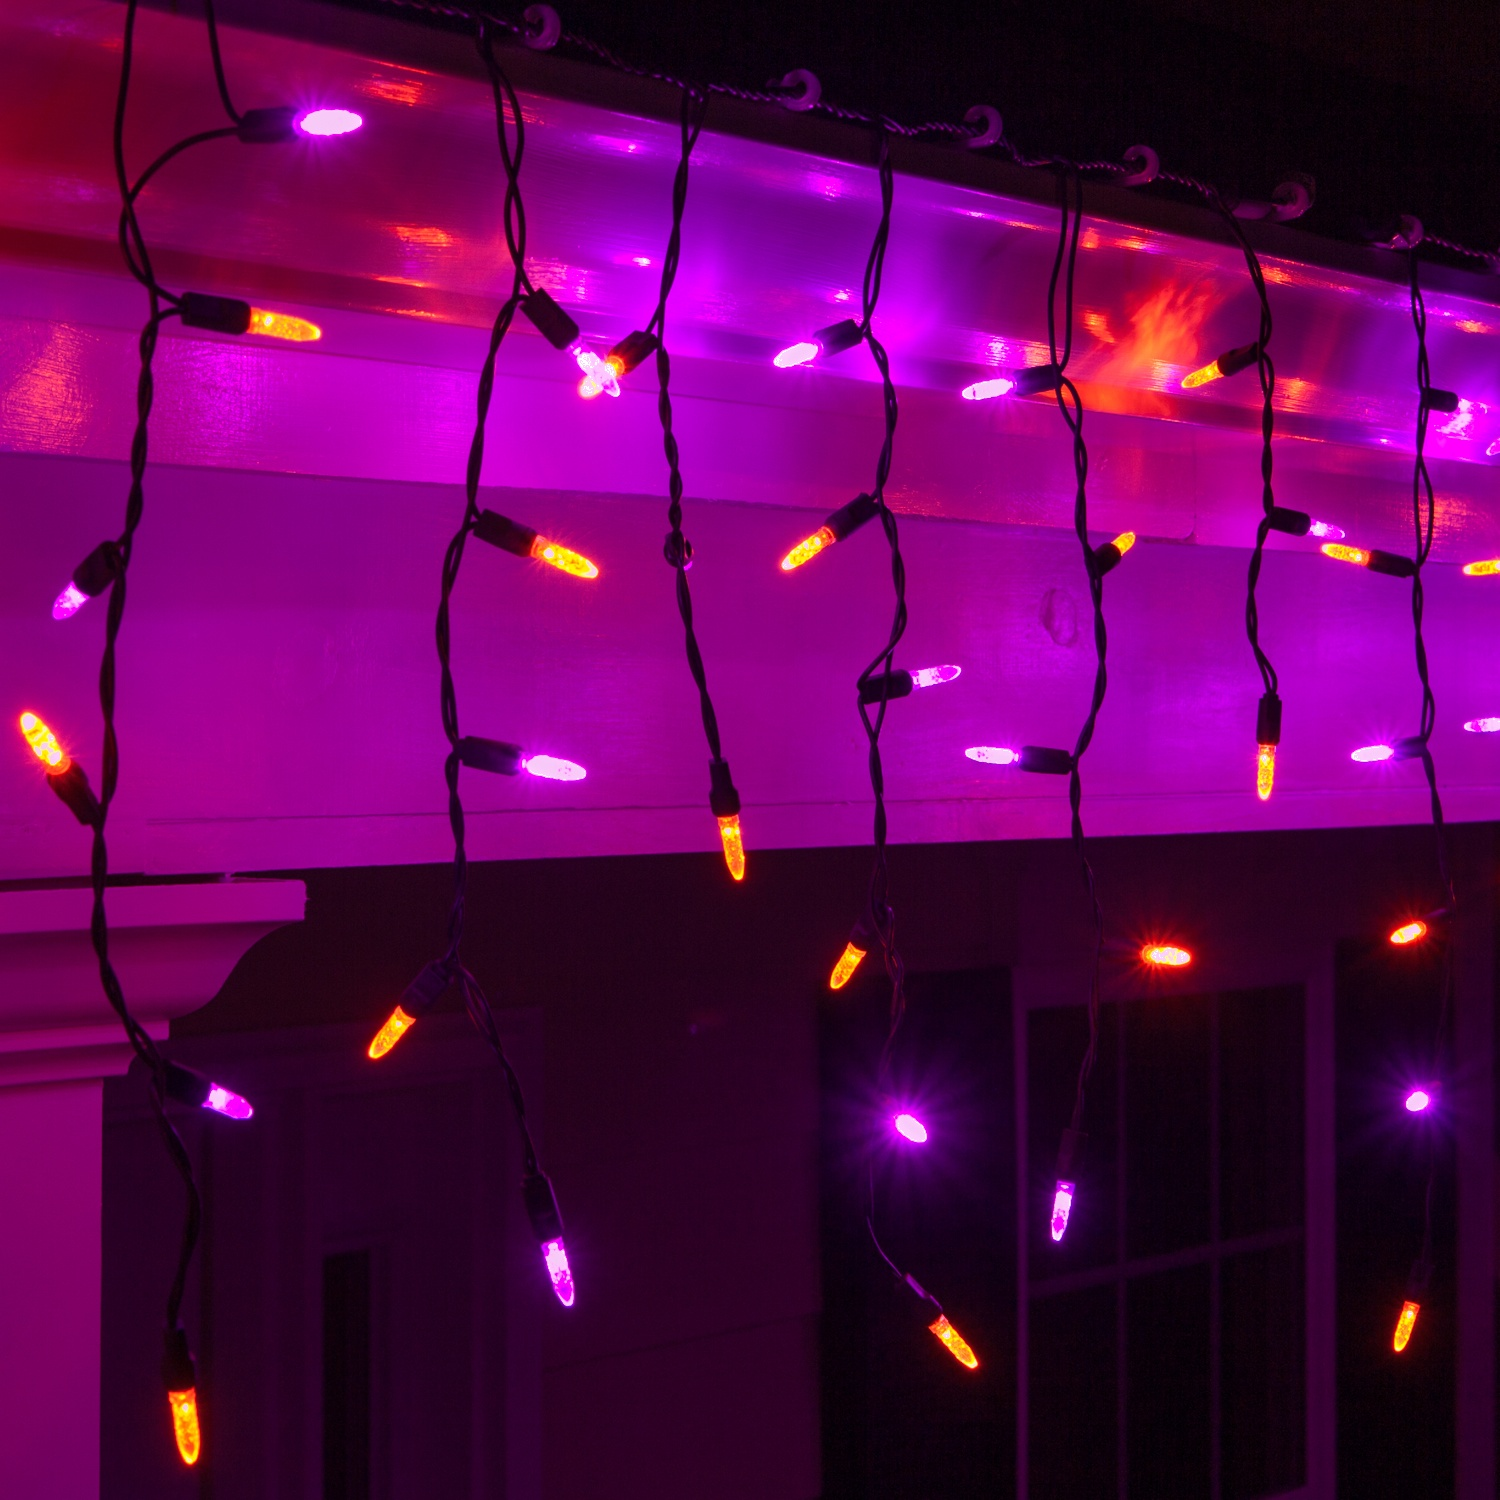 LED Christmas Lights - 70 M5 Purple, Orange Halloween LED Icicle Lights Black Wire